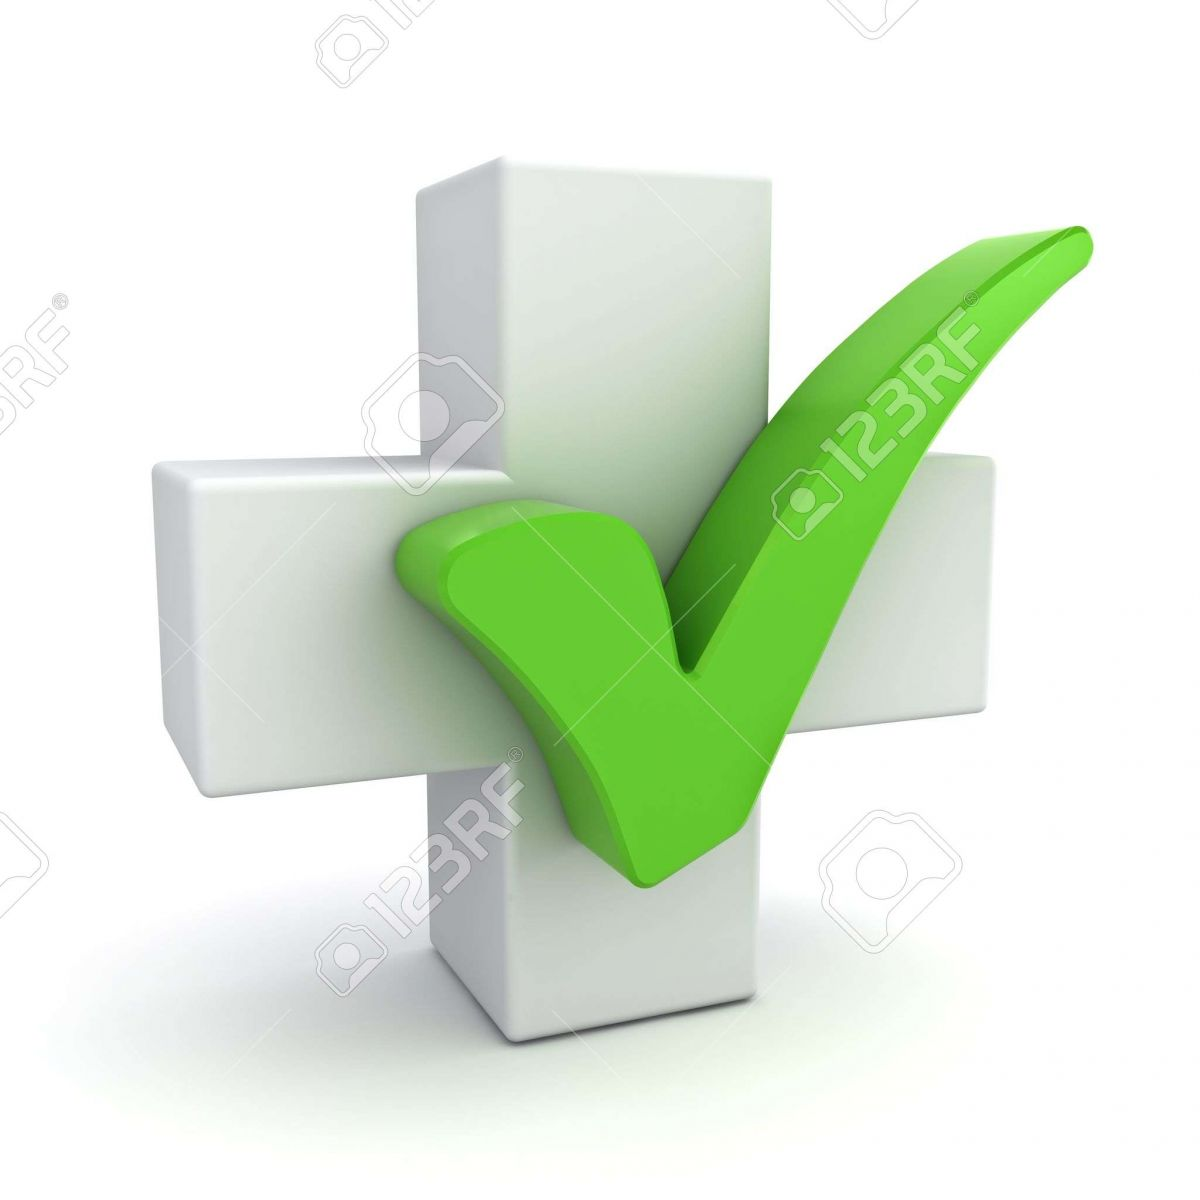 21579277-White-plus-sign-with-green-check-mark-concept-isolated-on-white--Stock-Photo.jpg (60 KB)